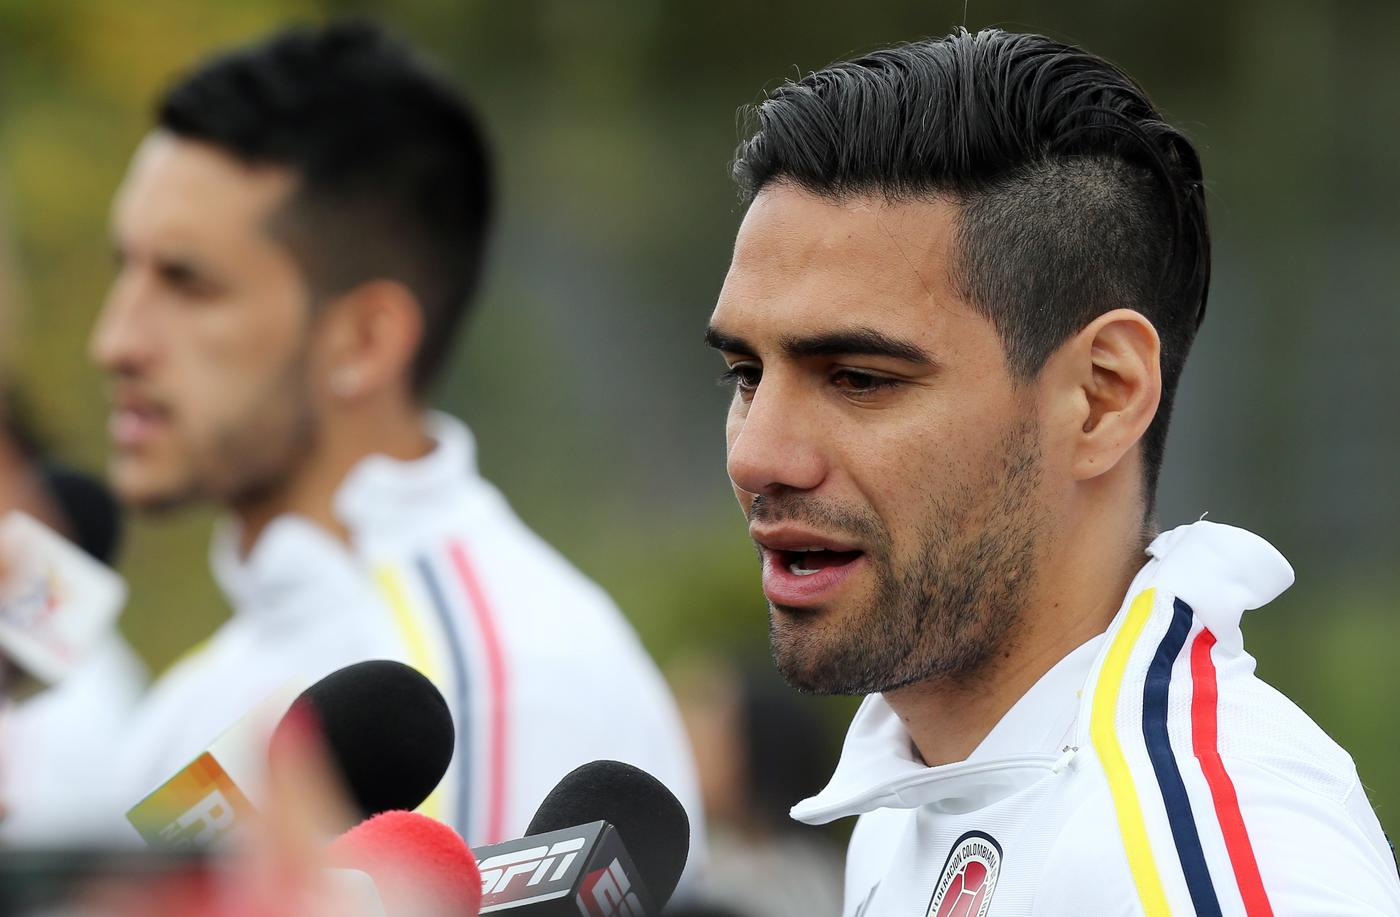 Radamel Falcao transfer would be a huge gamble for Chelsea, but one worth taking